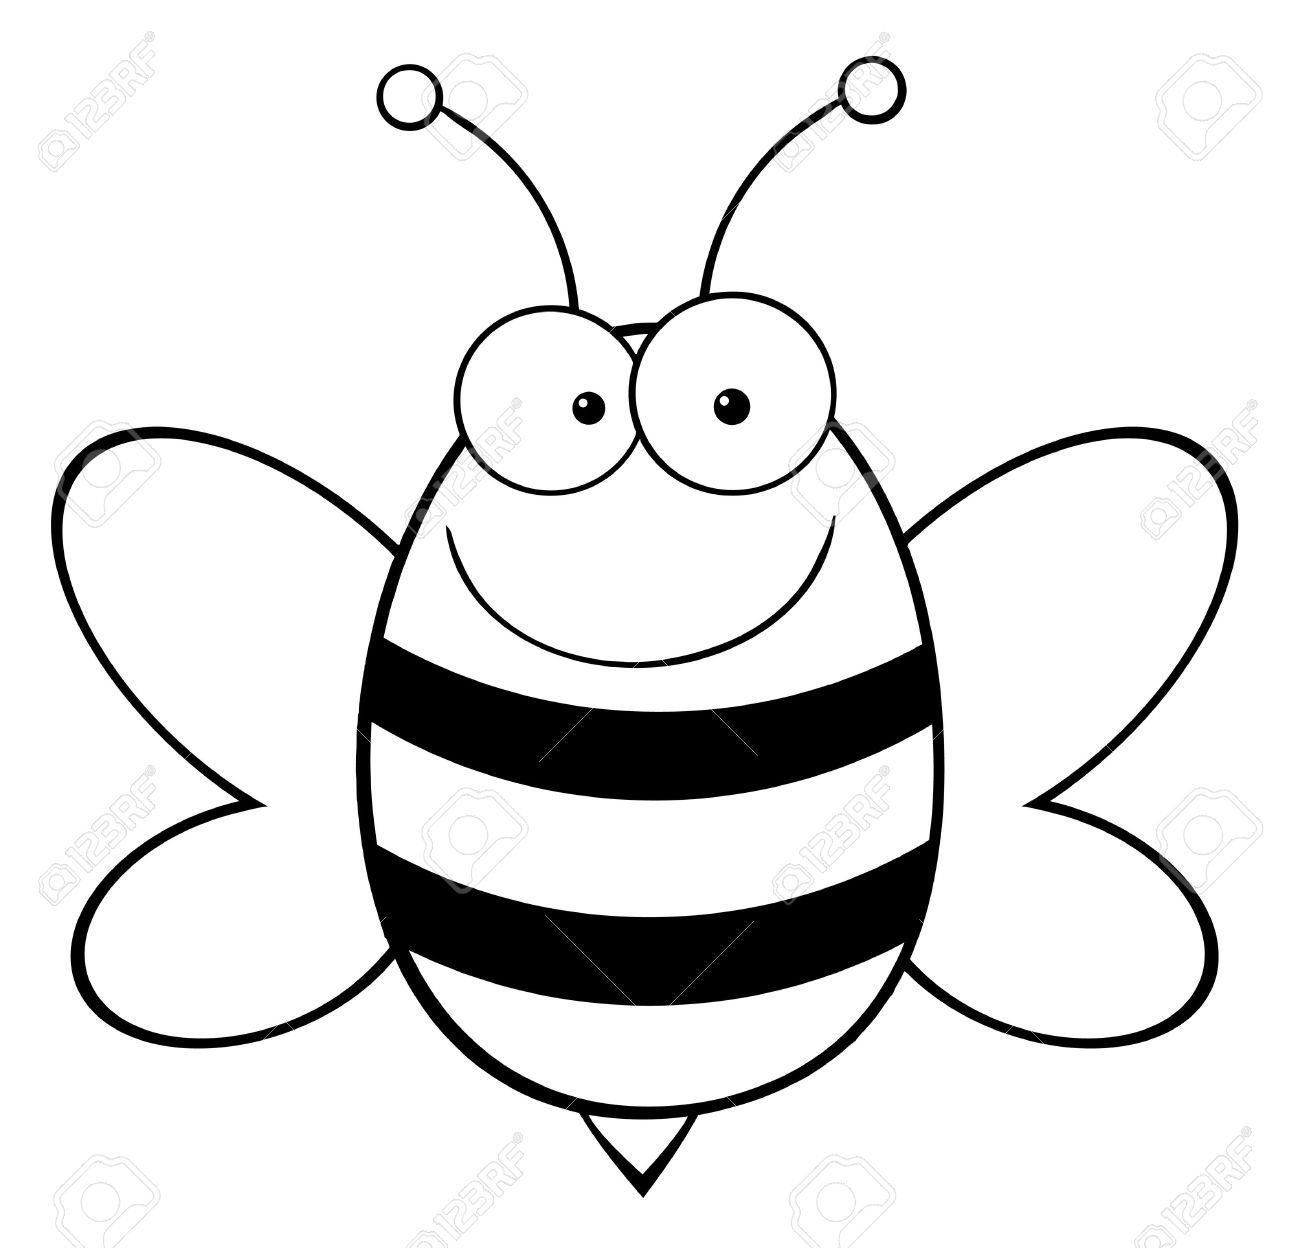 9276558 Outlined Bee Mascot Cartoon Character Stock Vector